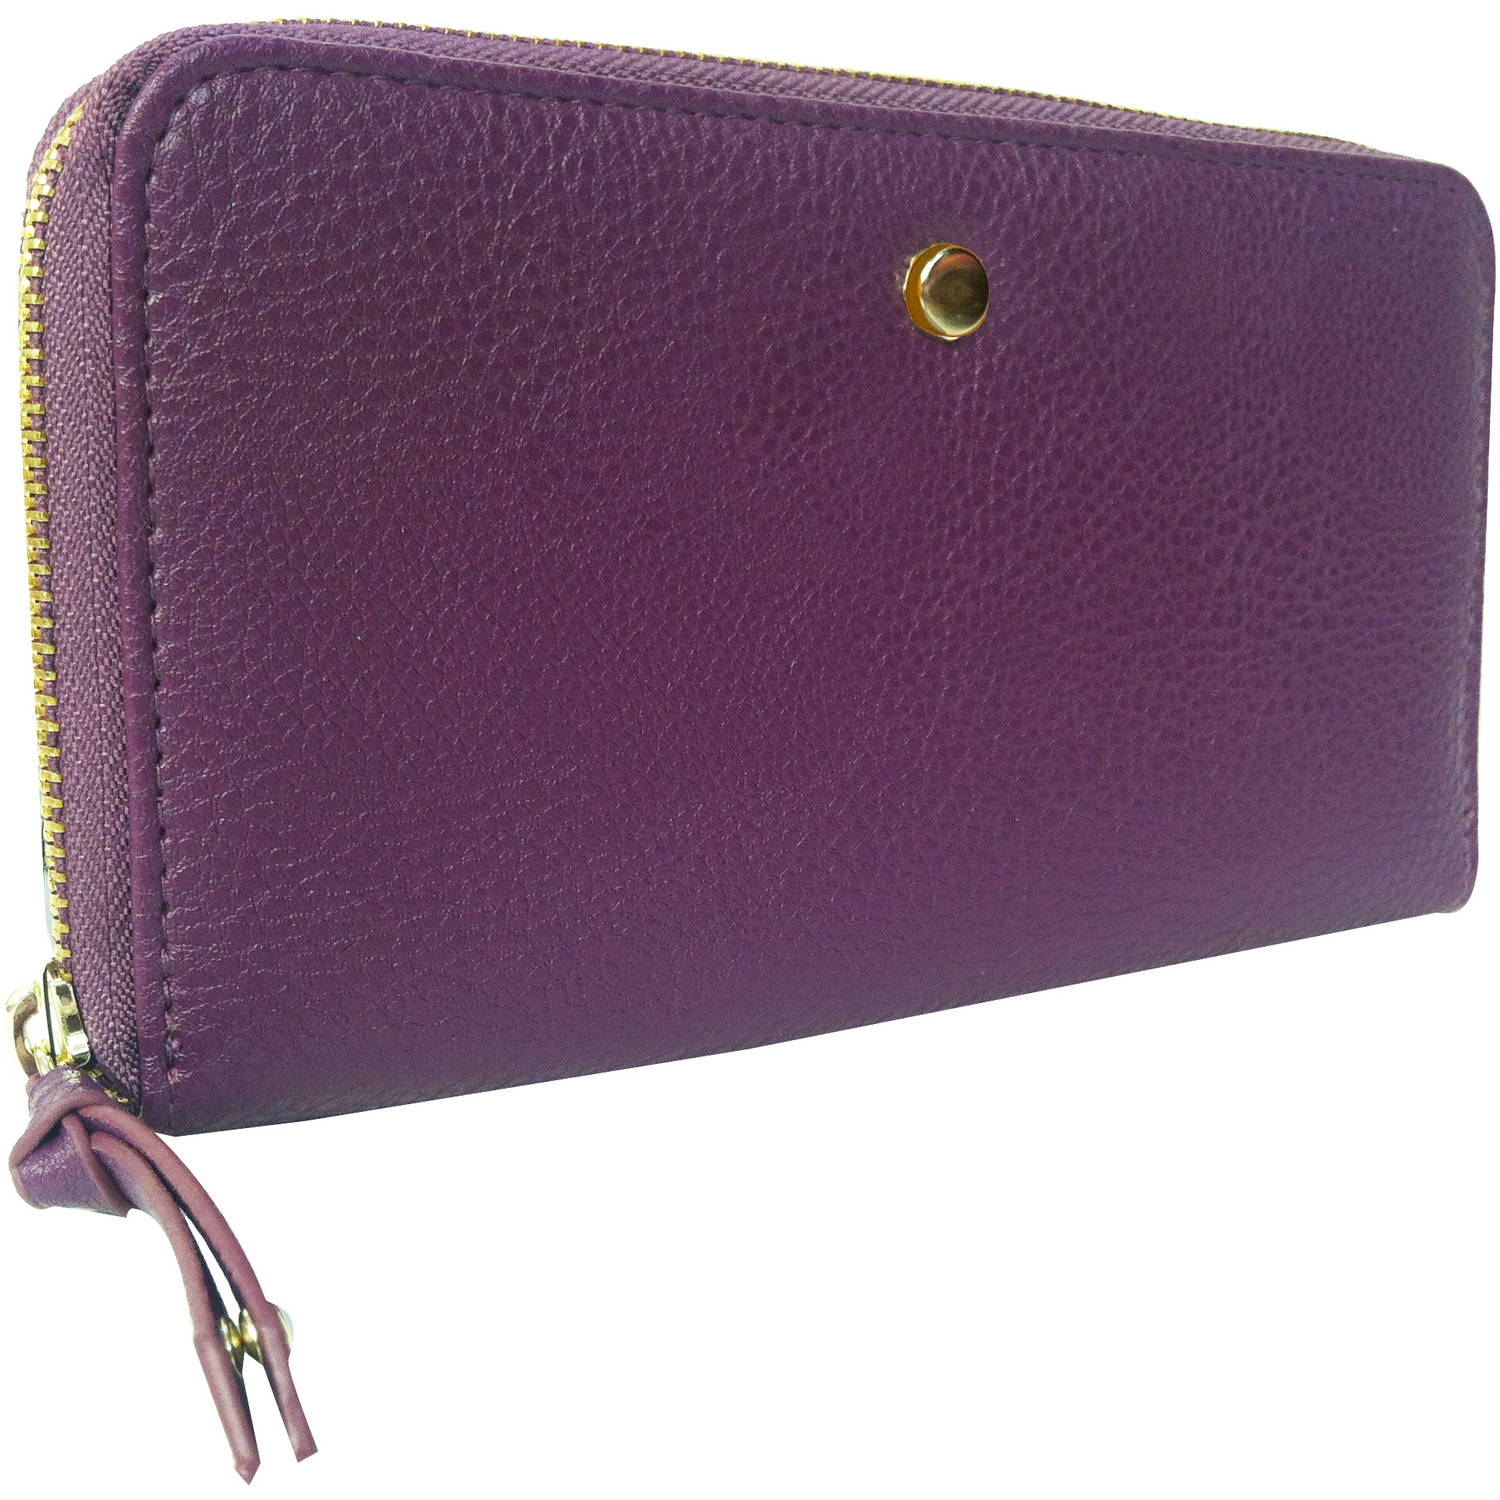 George Women's Wallet With Dot Accent